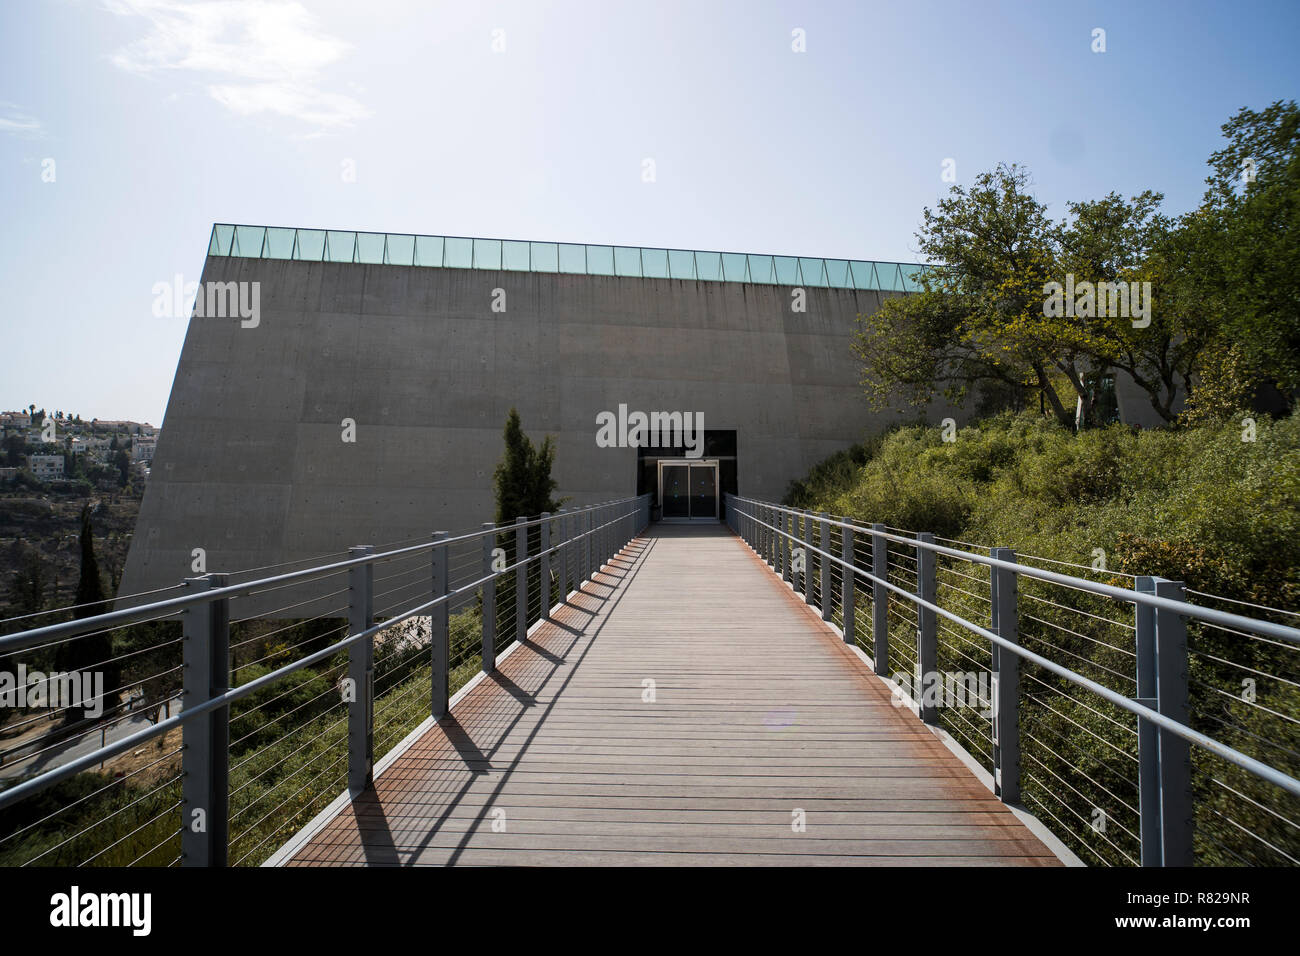 Yad Vashem. JERUSALEM, ISRAEL. 24 October 2018. Main entrance to the Yad Vashem, Israel's official memorial to the Jewish victims of the Holocaust, established in 1953 - Stock Image